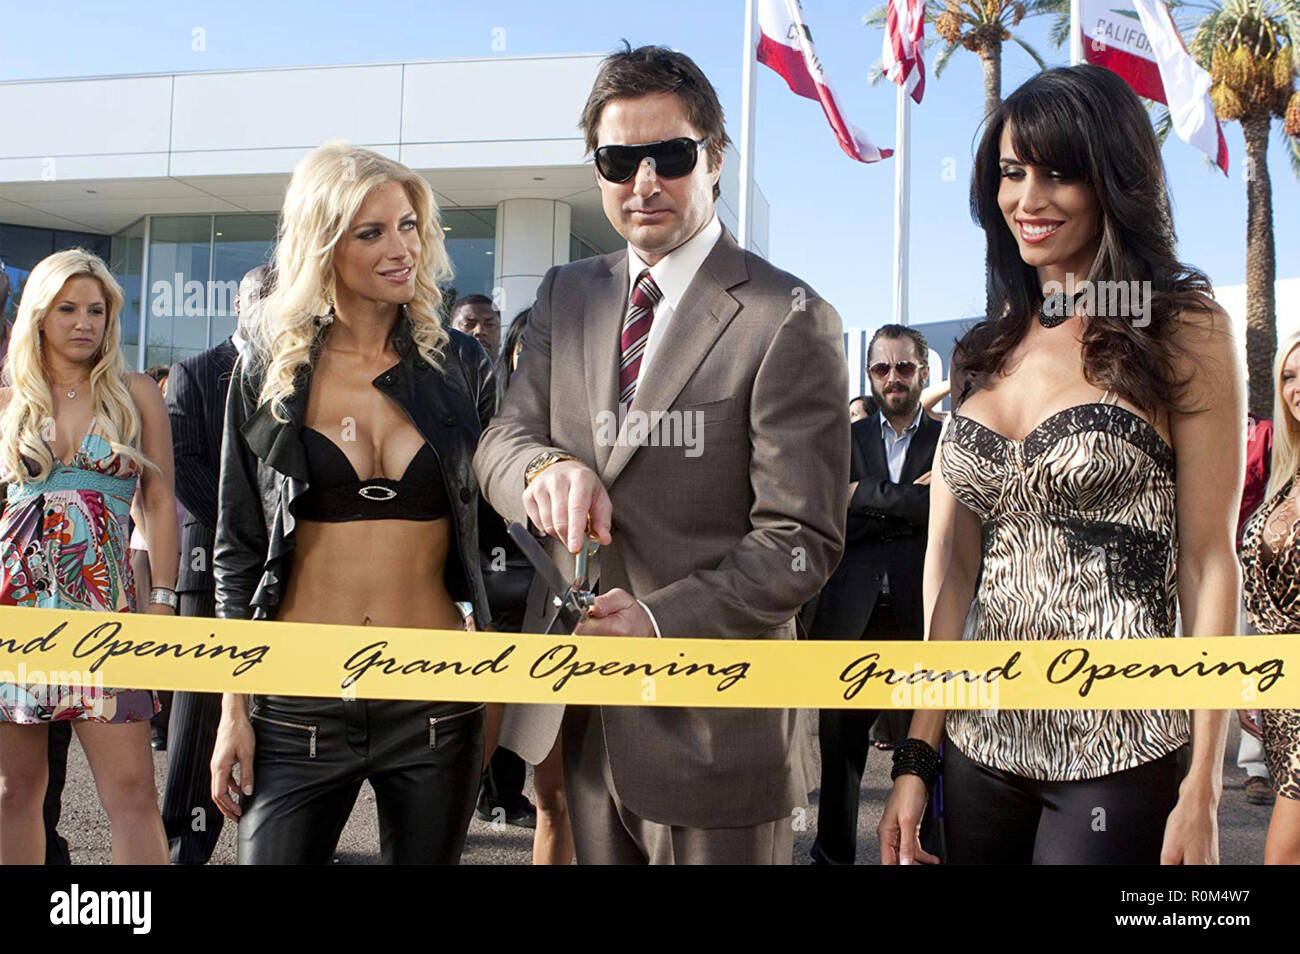 MIDDLE MEN 2009 Paramount Pictures film with from left: Stacey Alysson, Luke Wilson,Diane Sorrentino - Stock Image